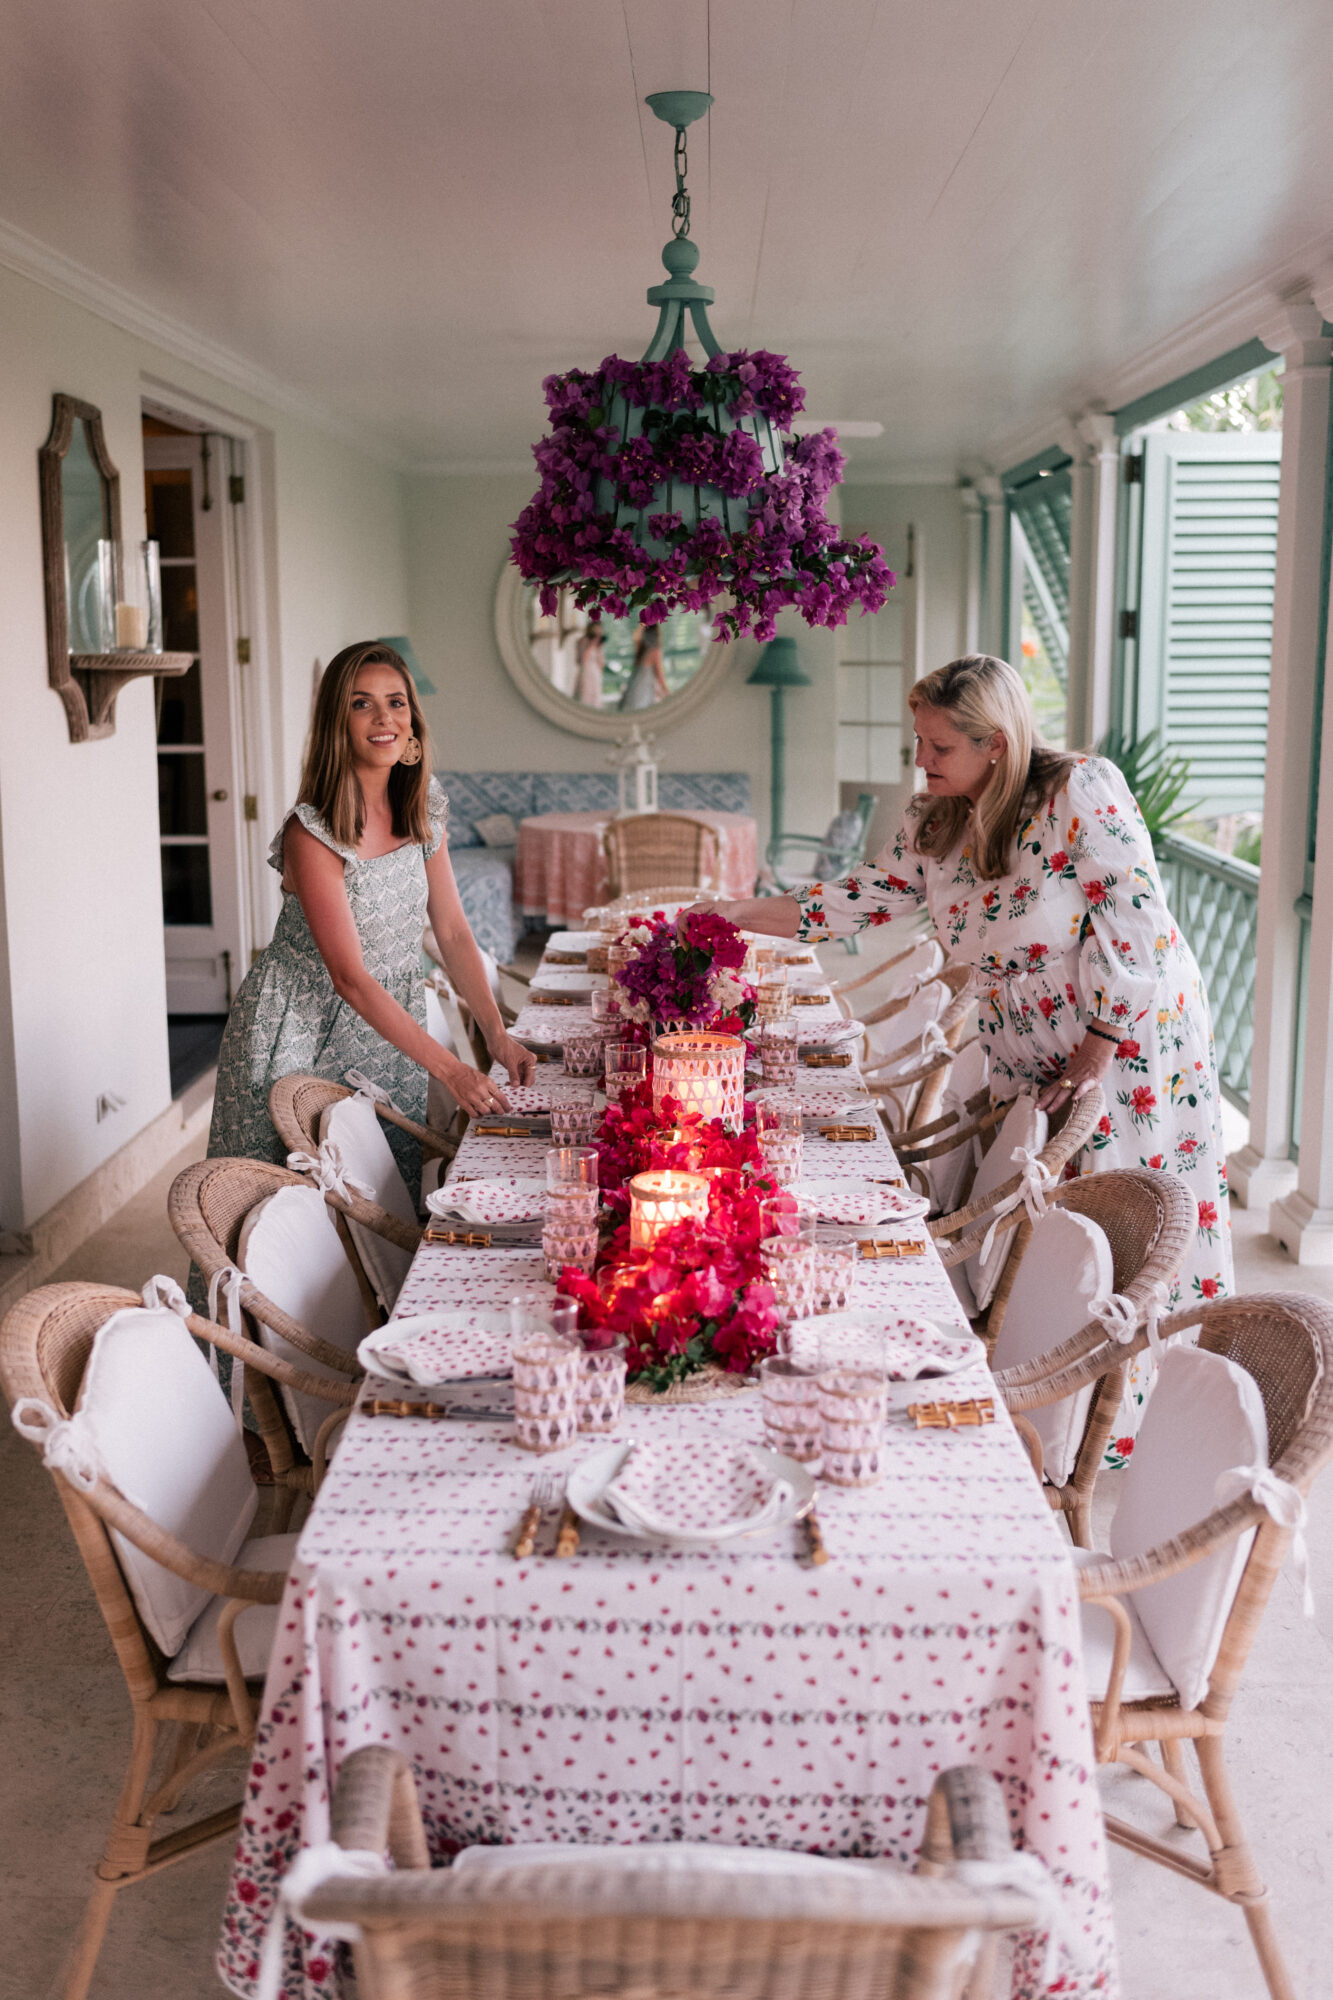 Amanda Lindroth and Julia Berolzheimer stand around the dining table.